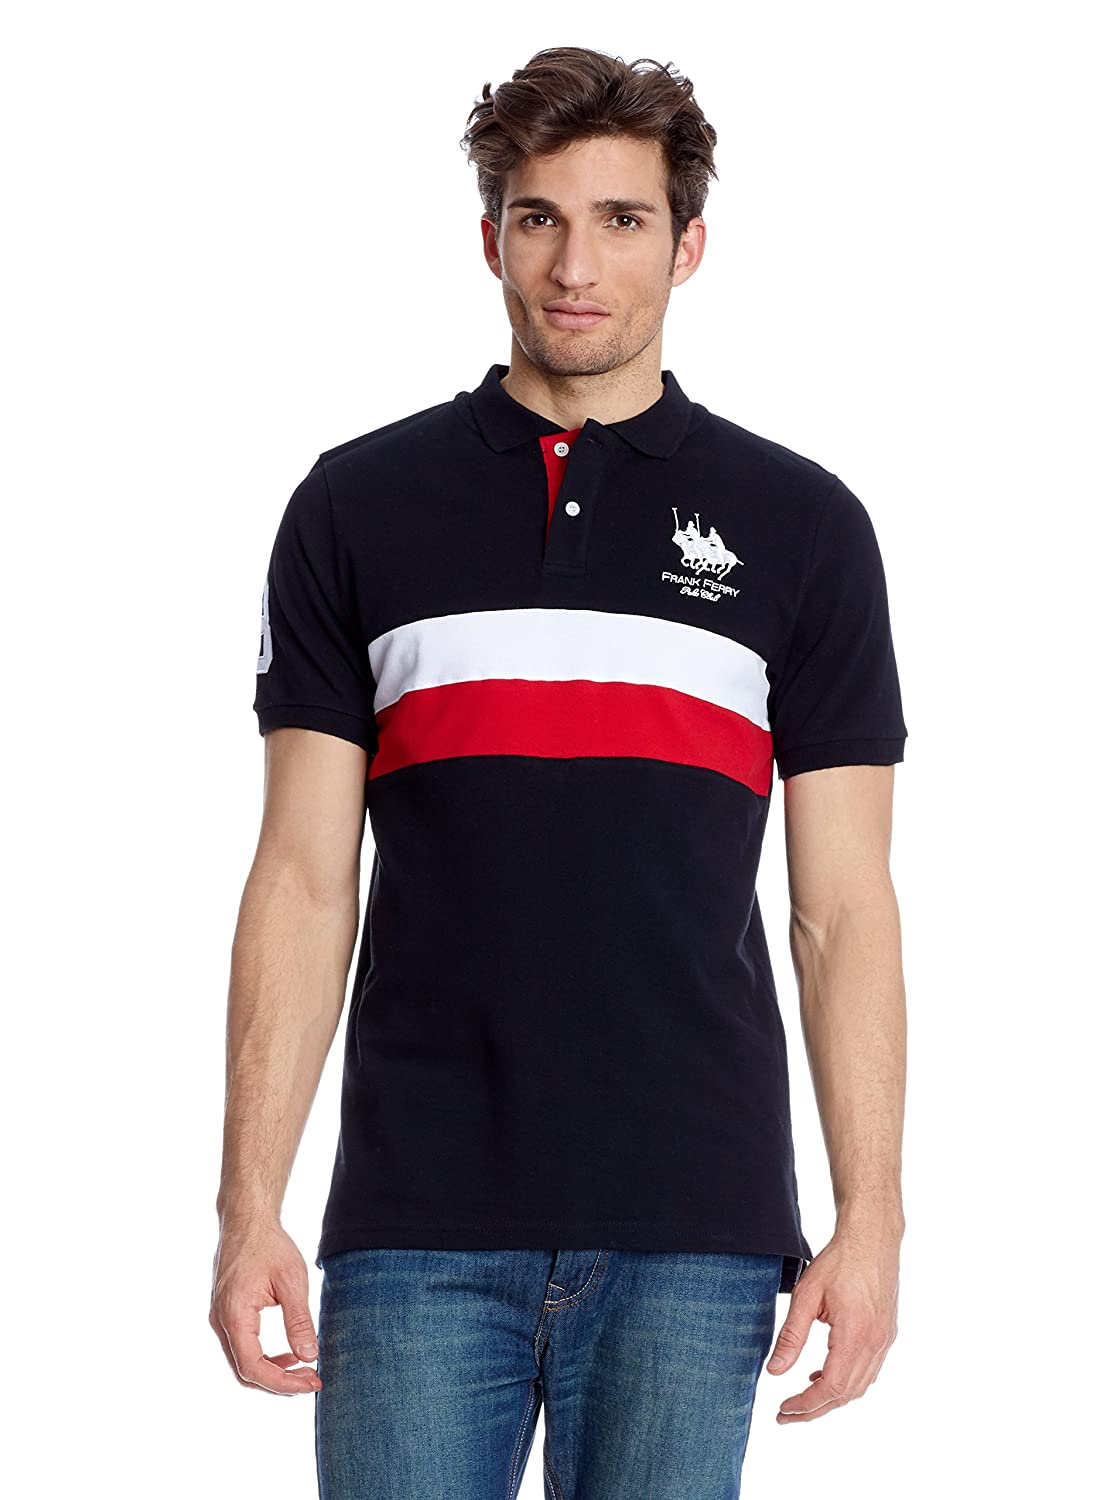 FRANK FERRY Polo Logo Negro 3XL: Amazon.es: Ropa y accesorios